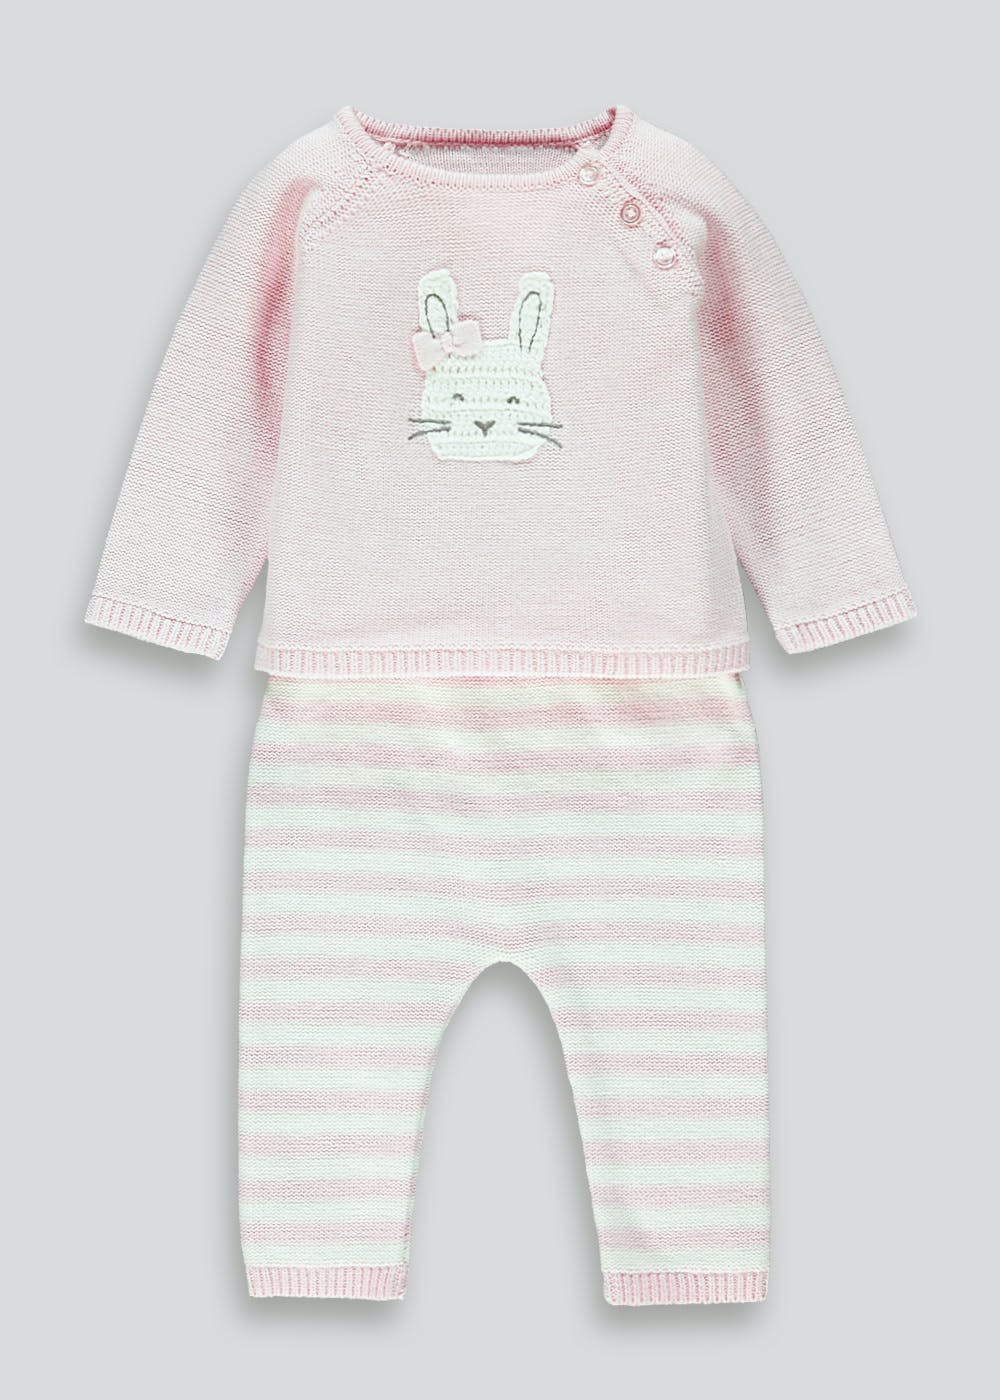 Baby girls pink striped short romper sleepsuit Sizes 0-3 3-6 & 6-12 months Clothes, Shoes & Accessories